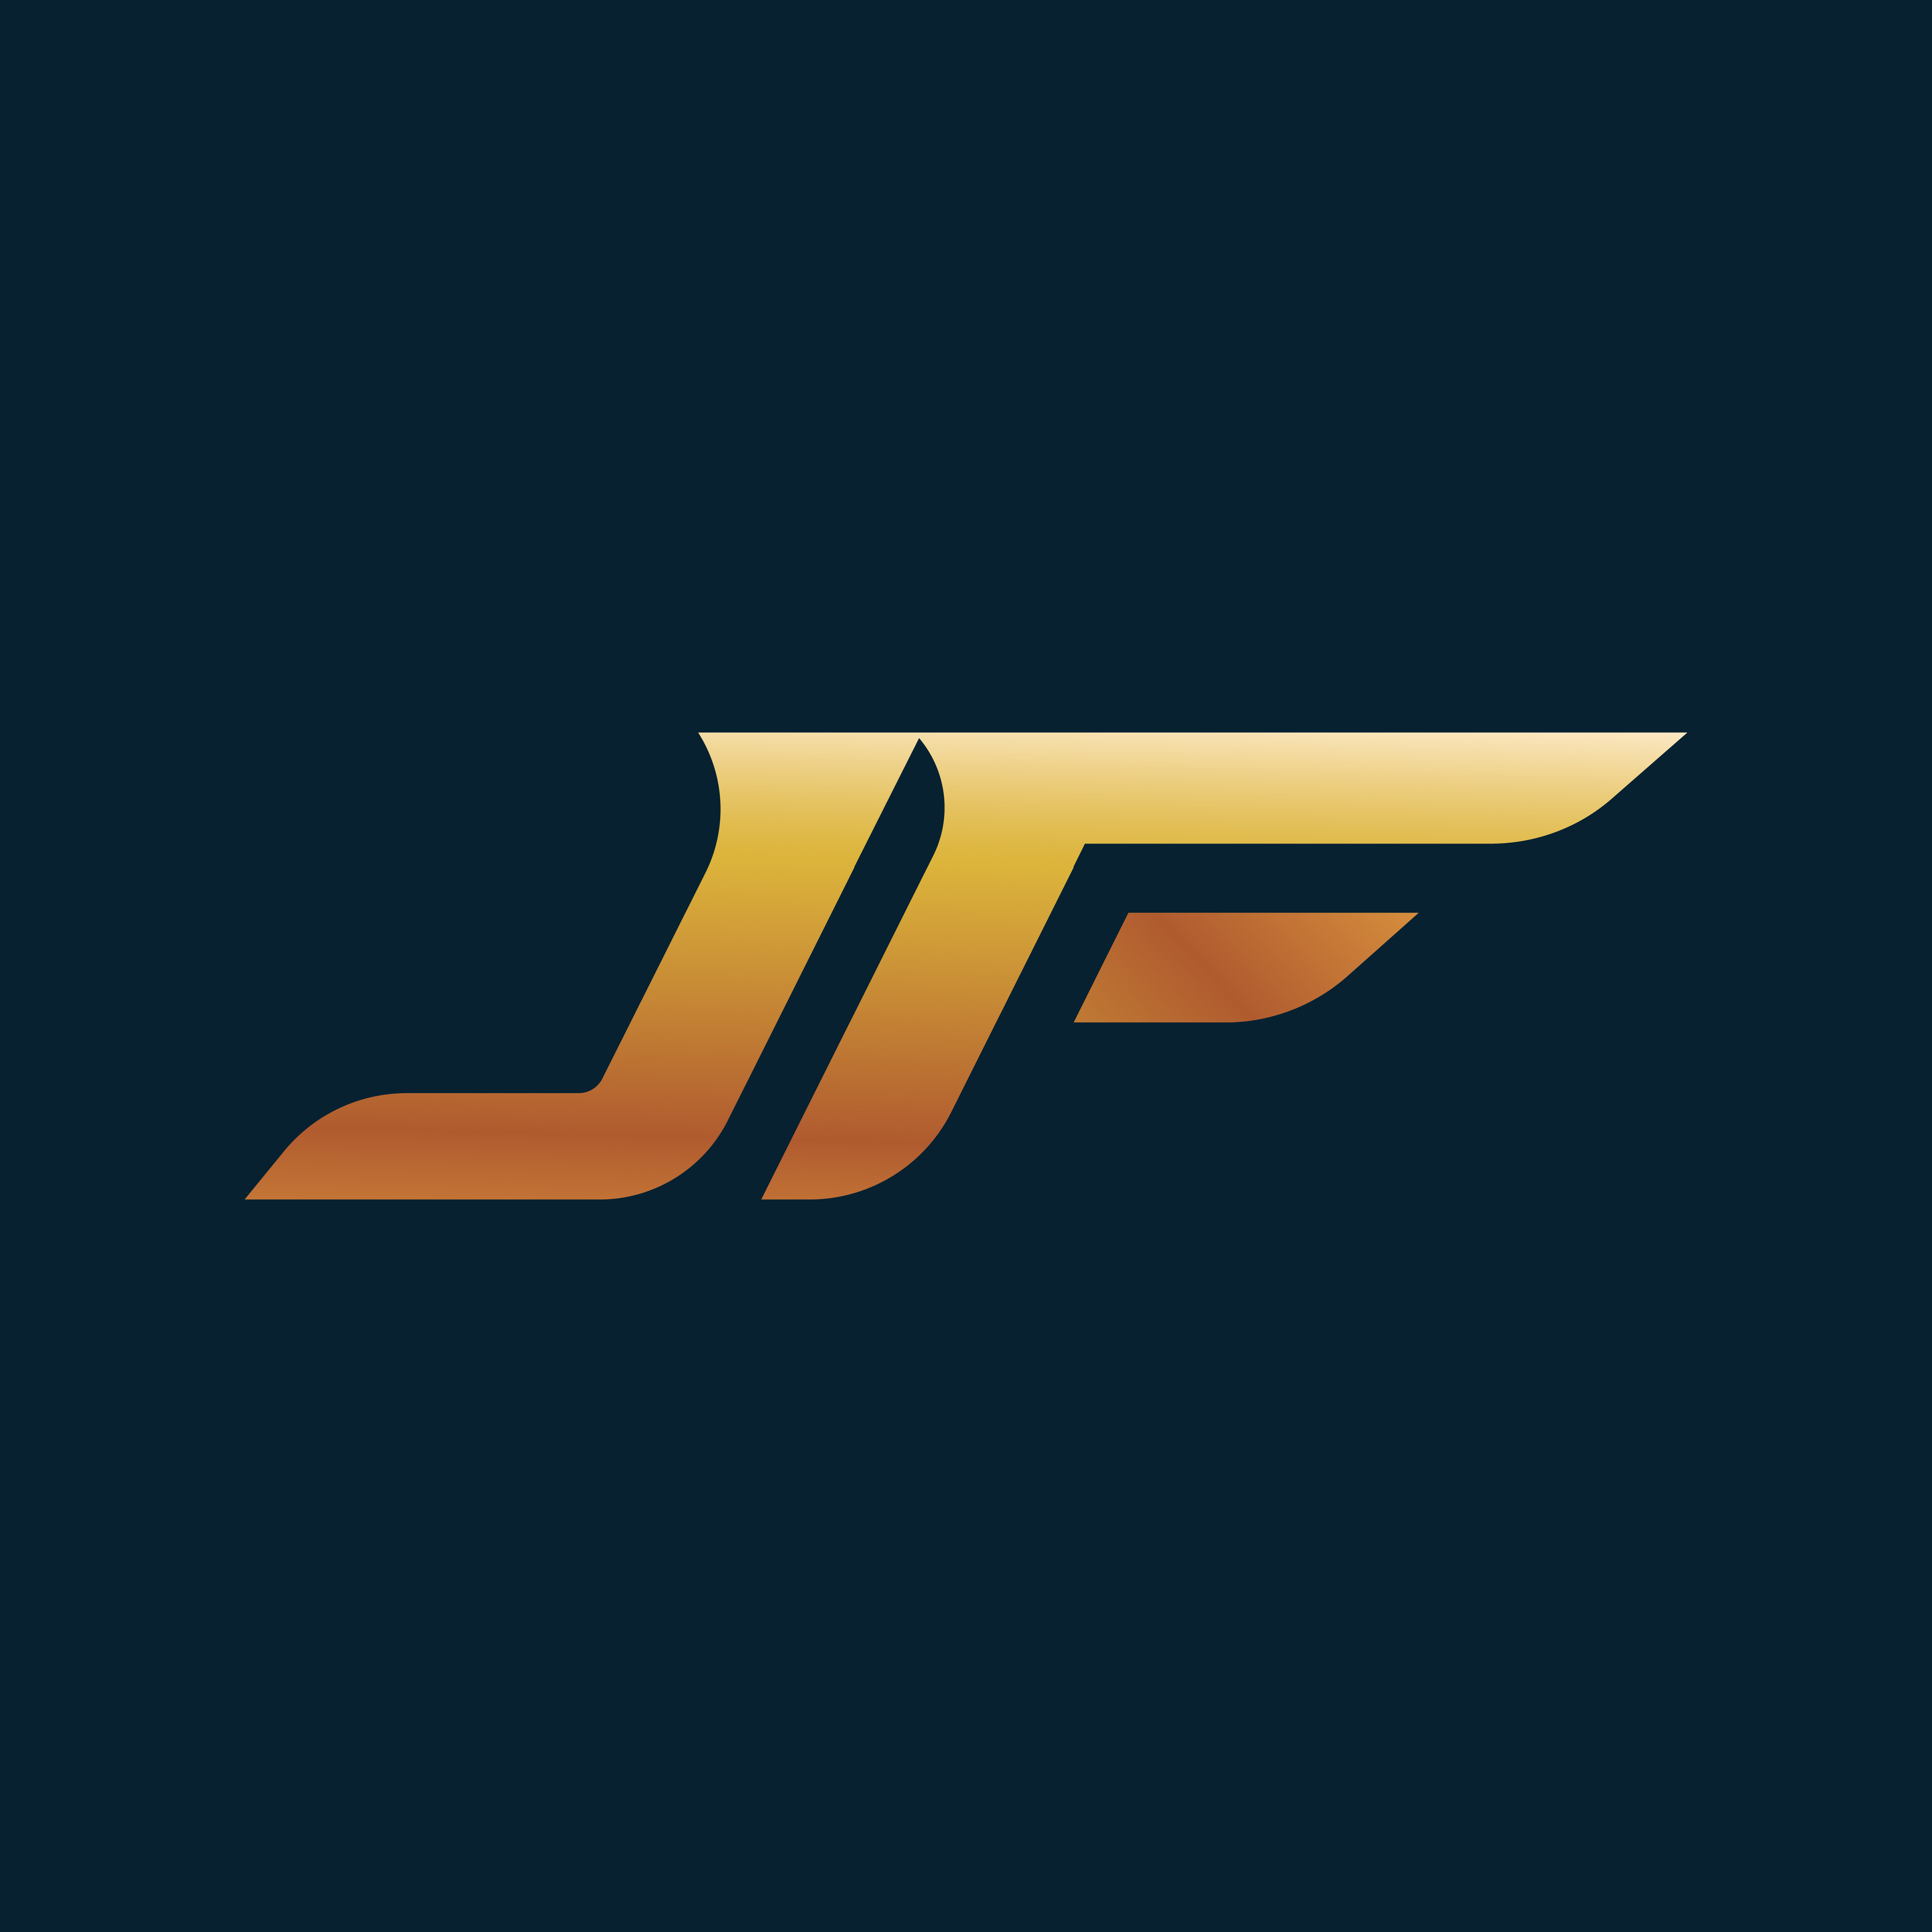 Abstract B Logotype: Letter JF Logo. Speed Design Concept Template